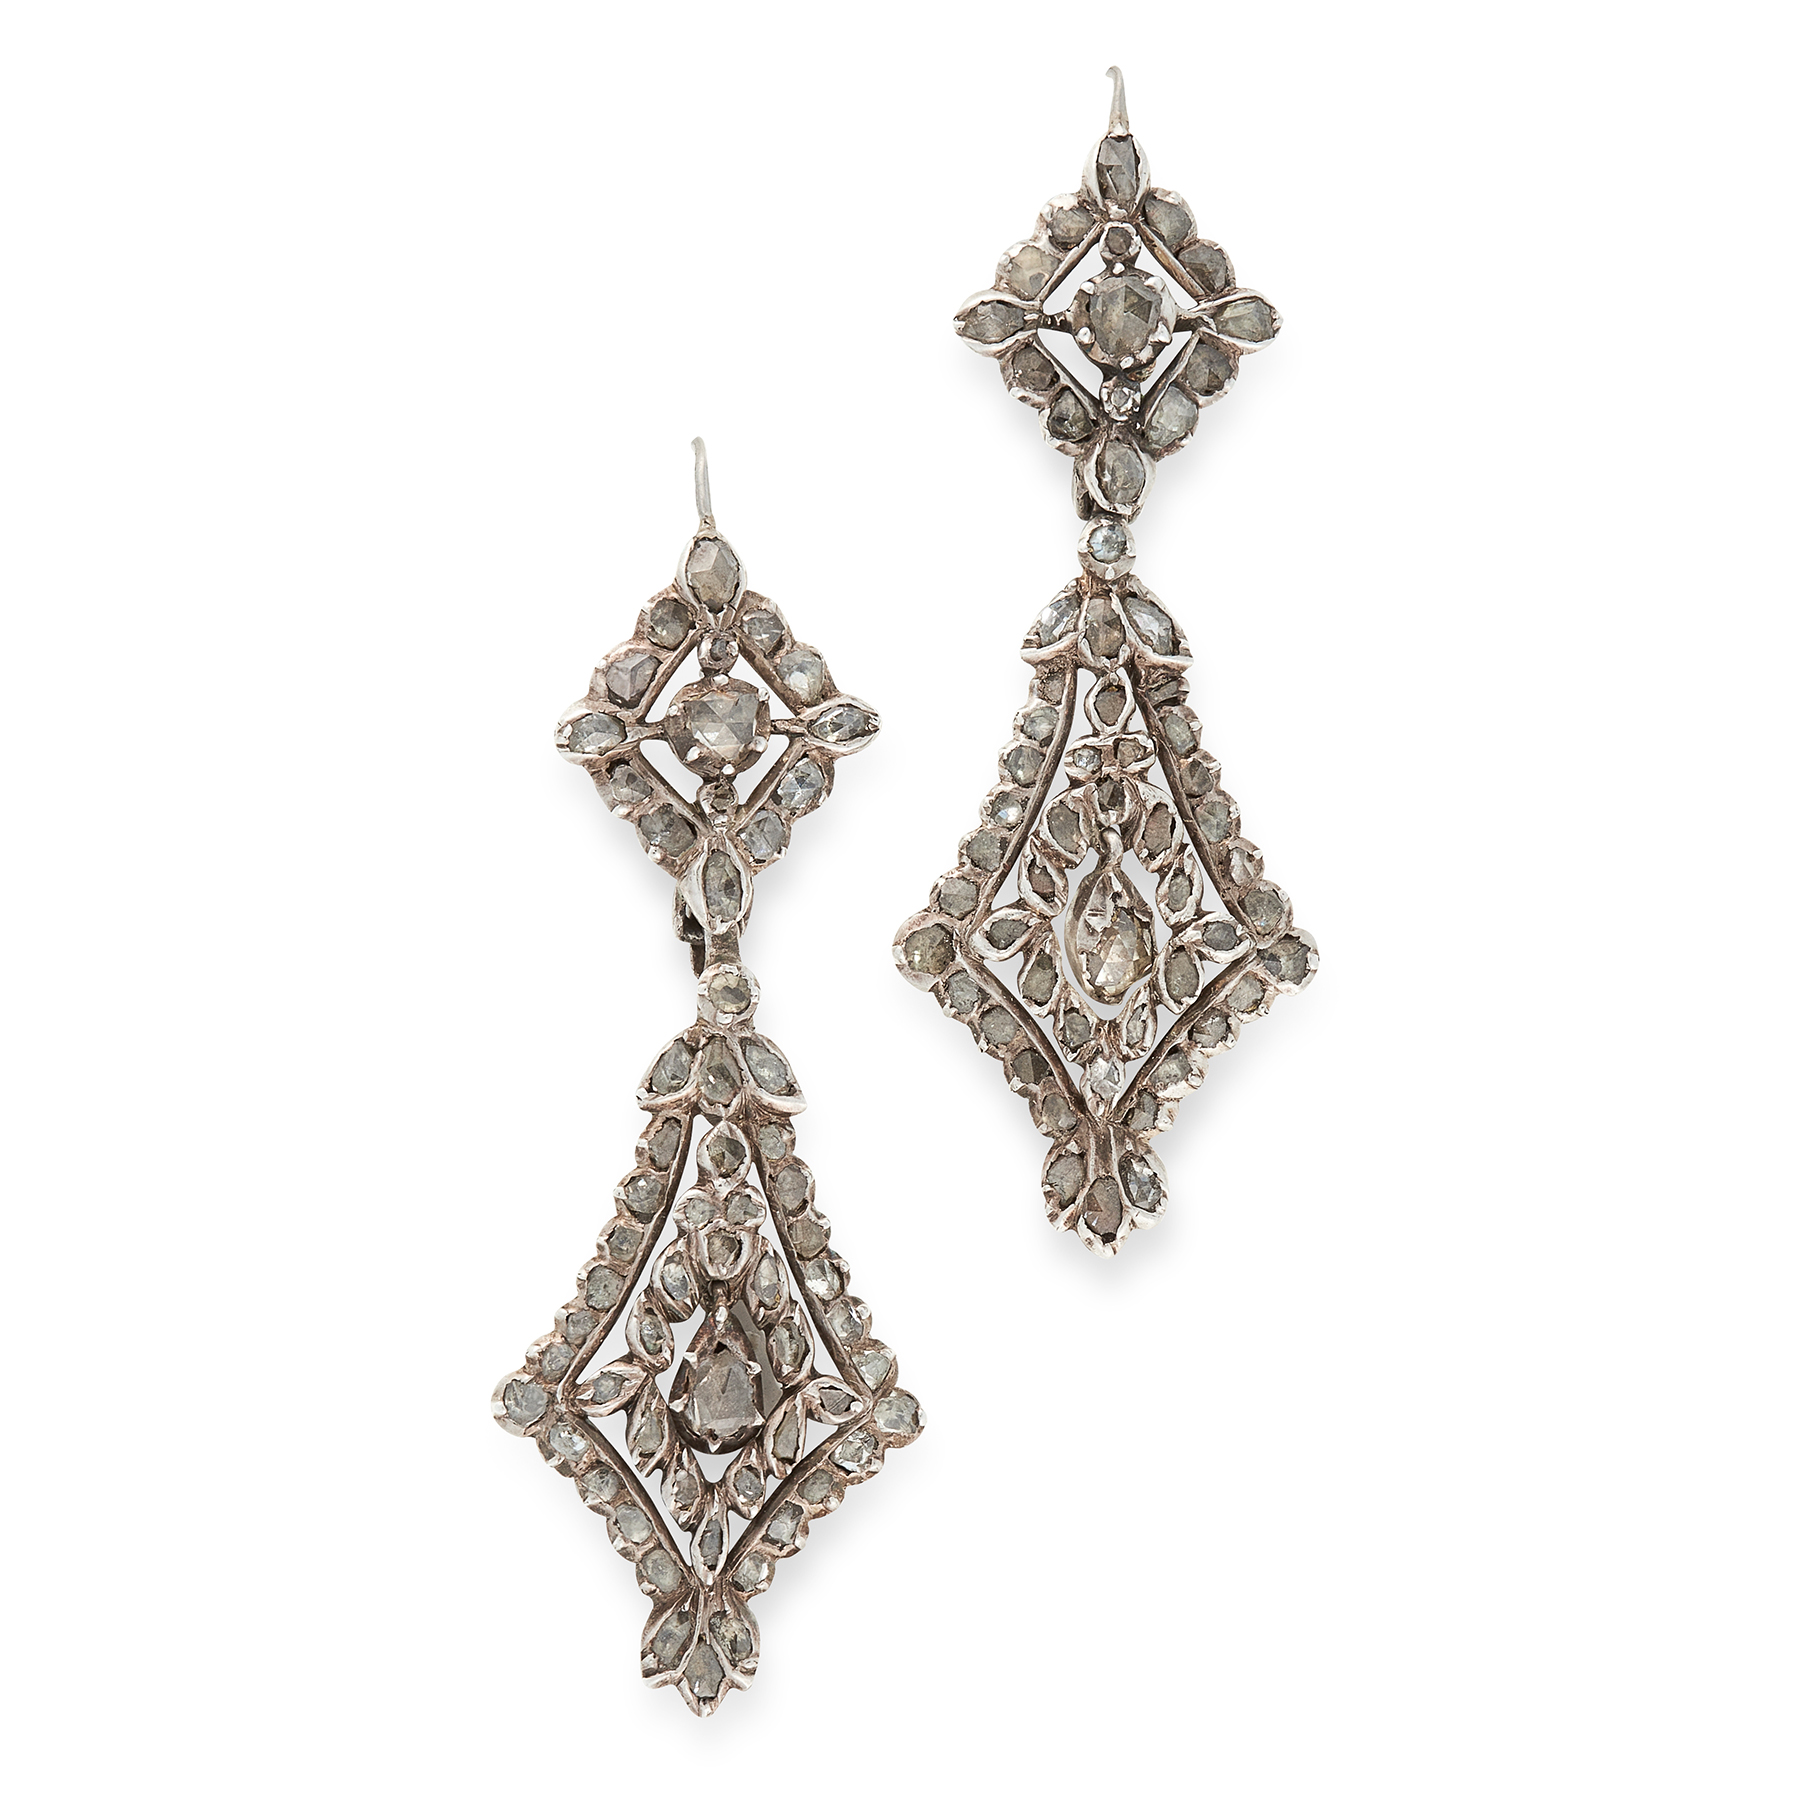 A PAIR OF ANTIQUE DIAMOND EARRINGS, CIRCA 1800 in silver, the tapering, articulated bodies set